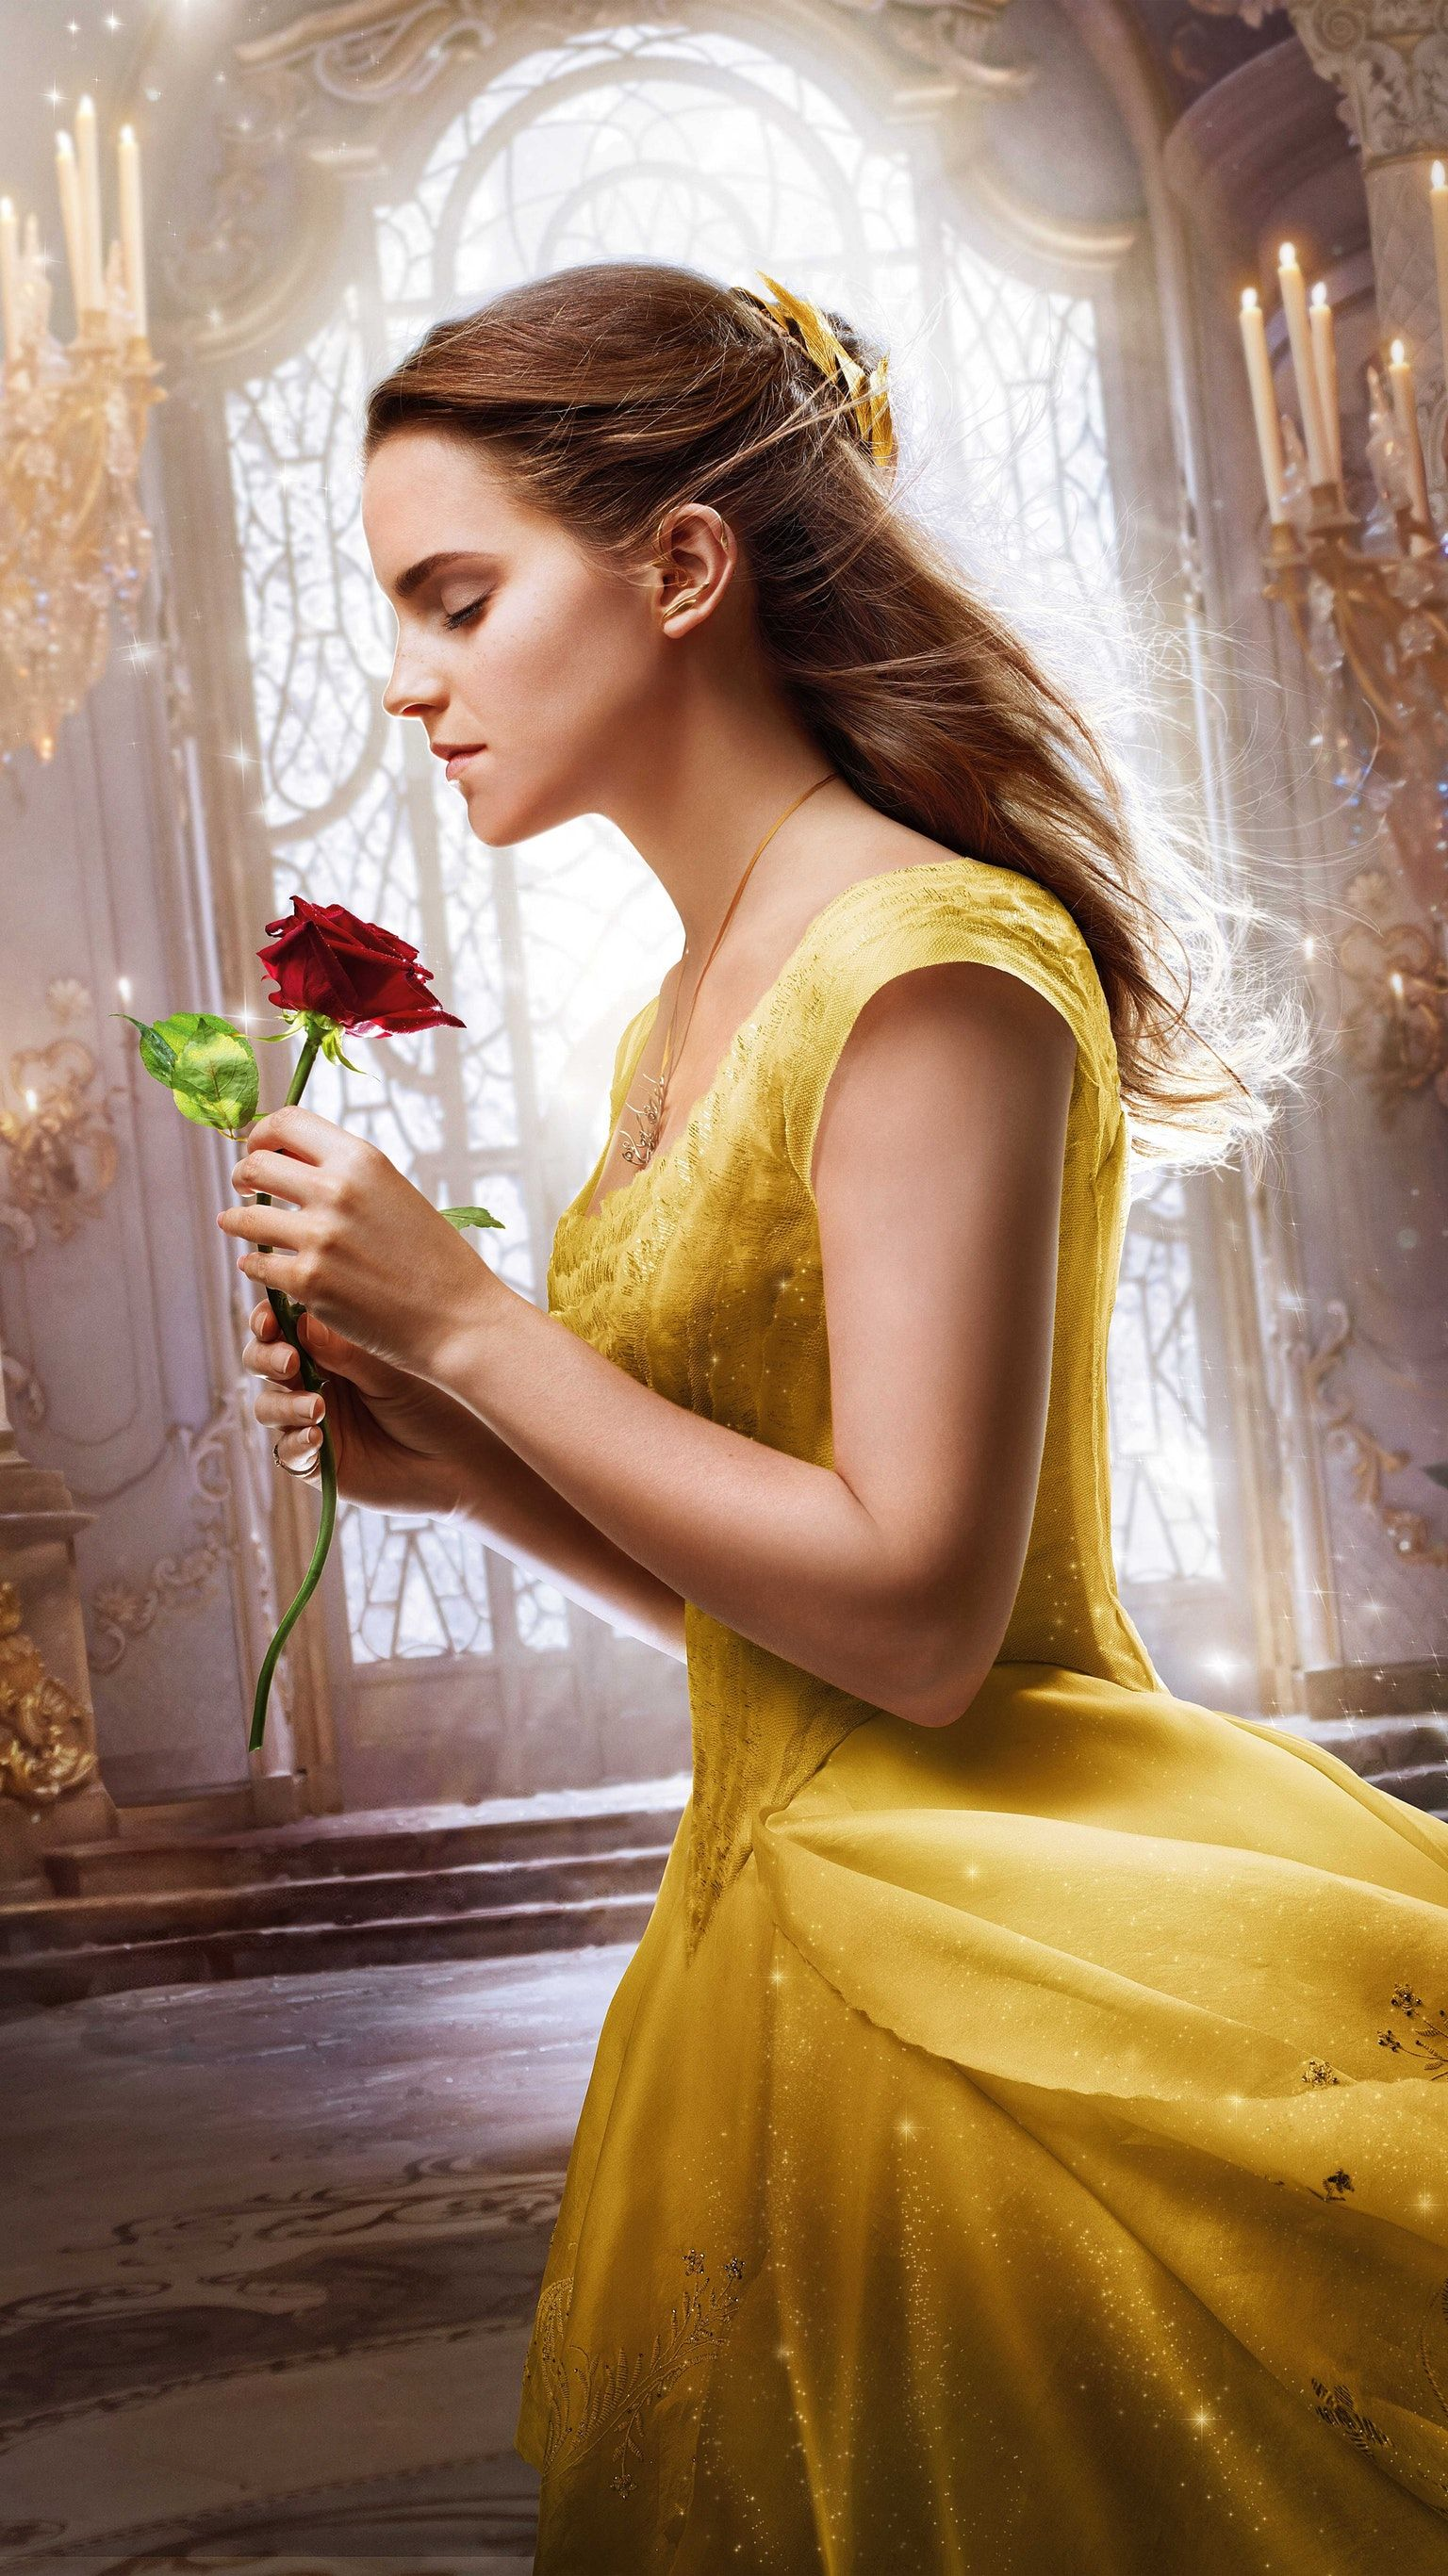 Free Download Beauty And The Beast 2017 Phone Wallpaper In 2020